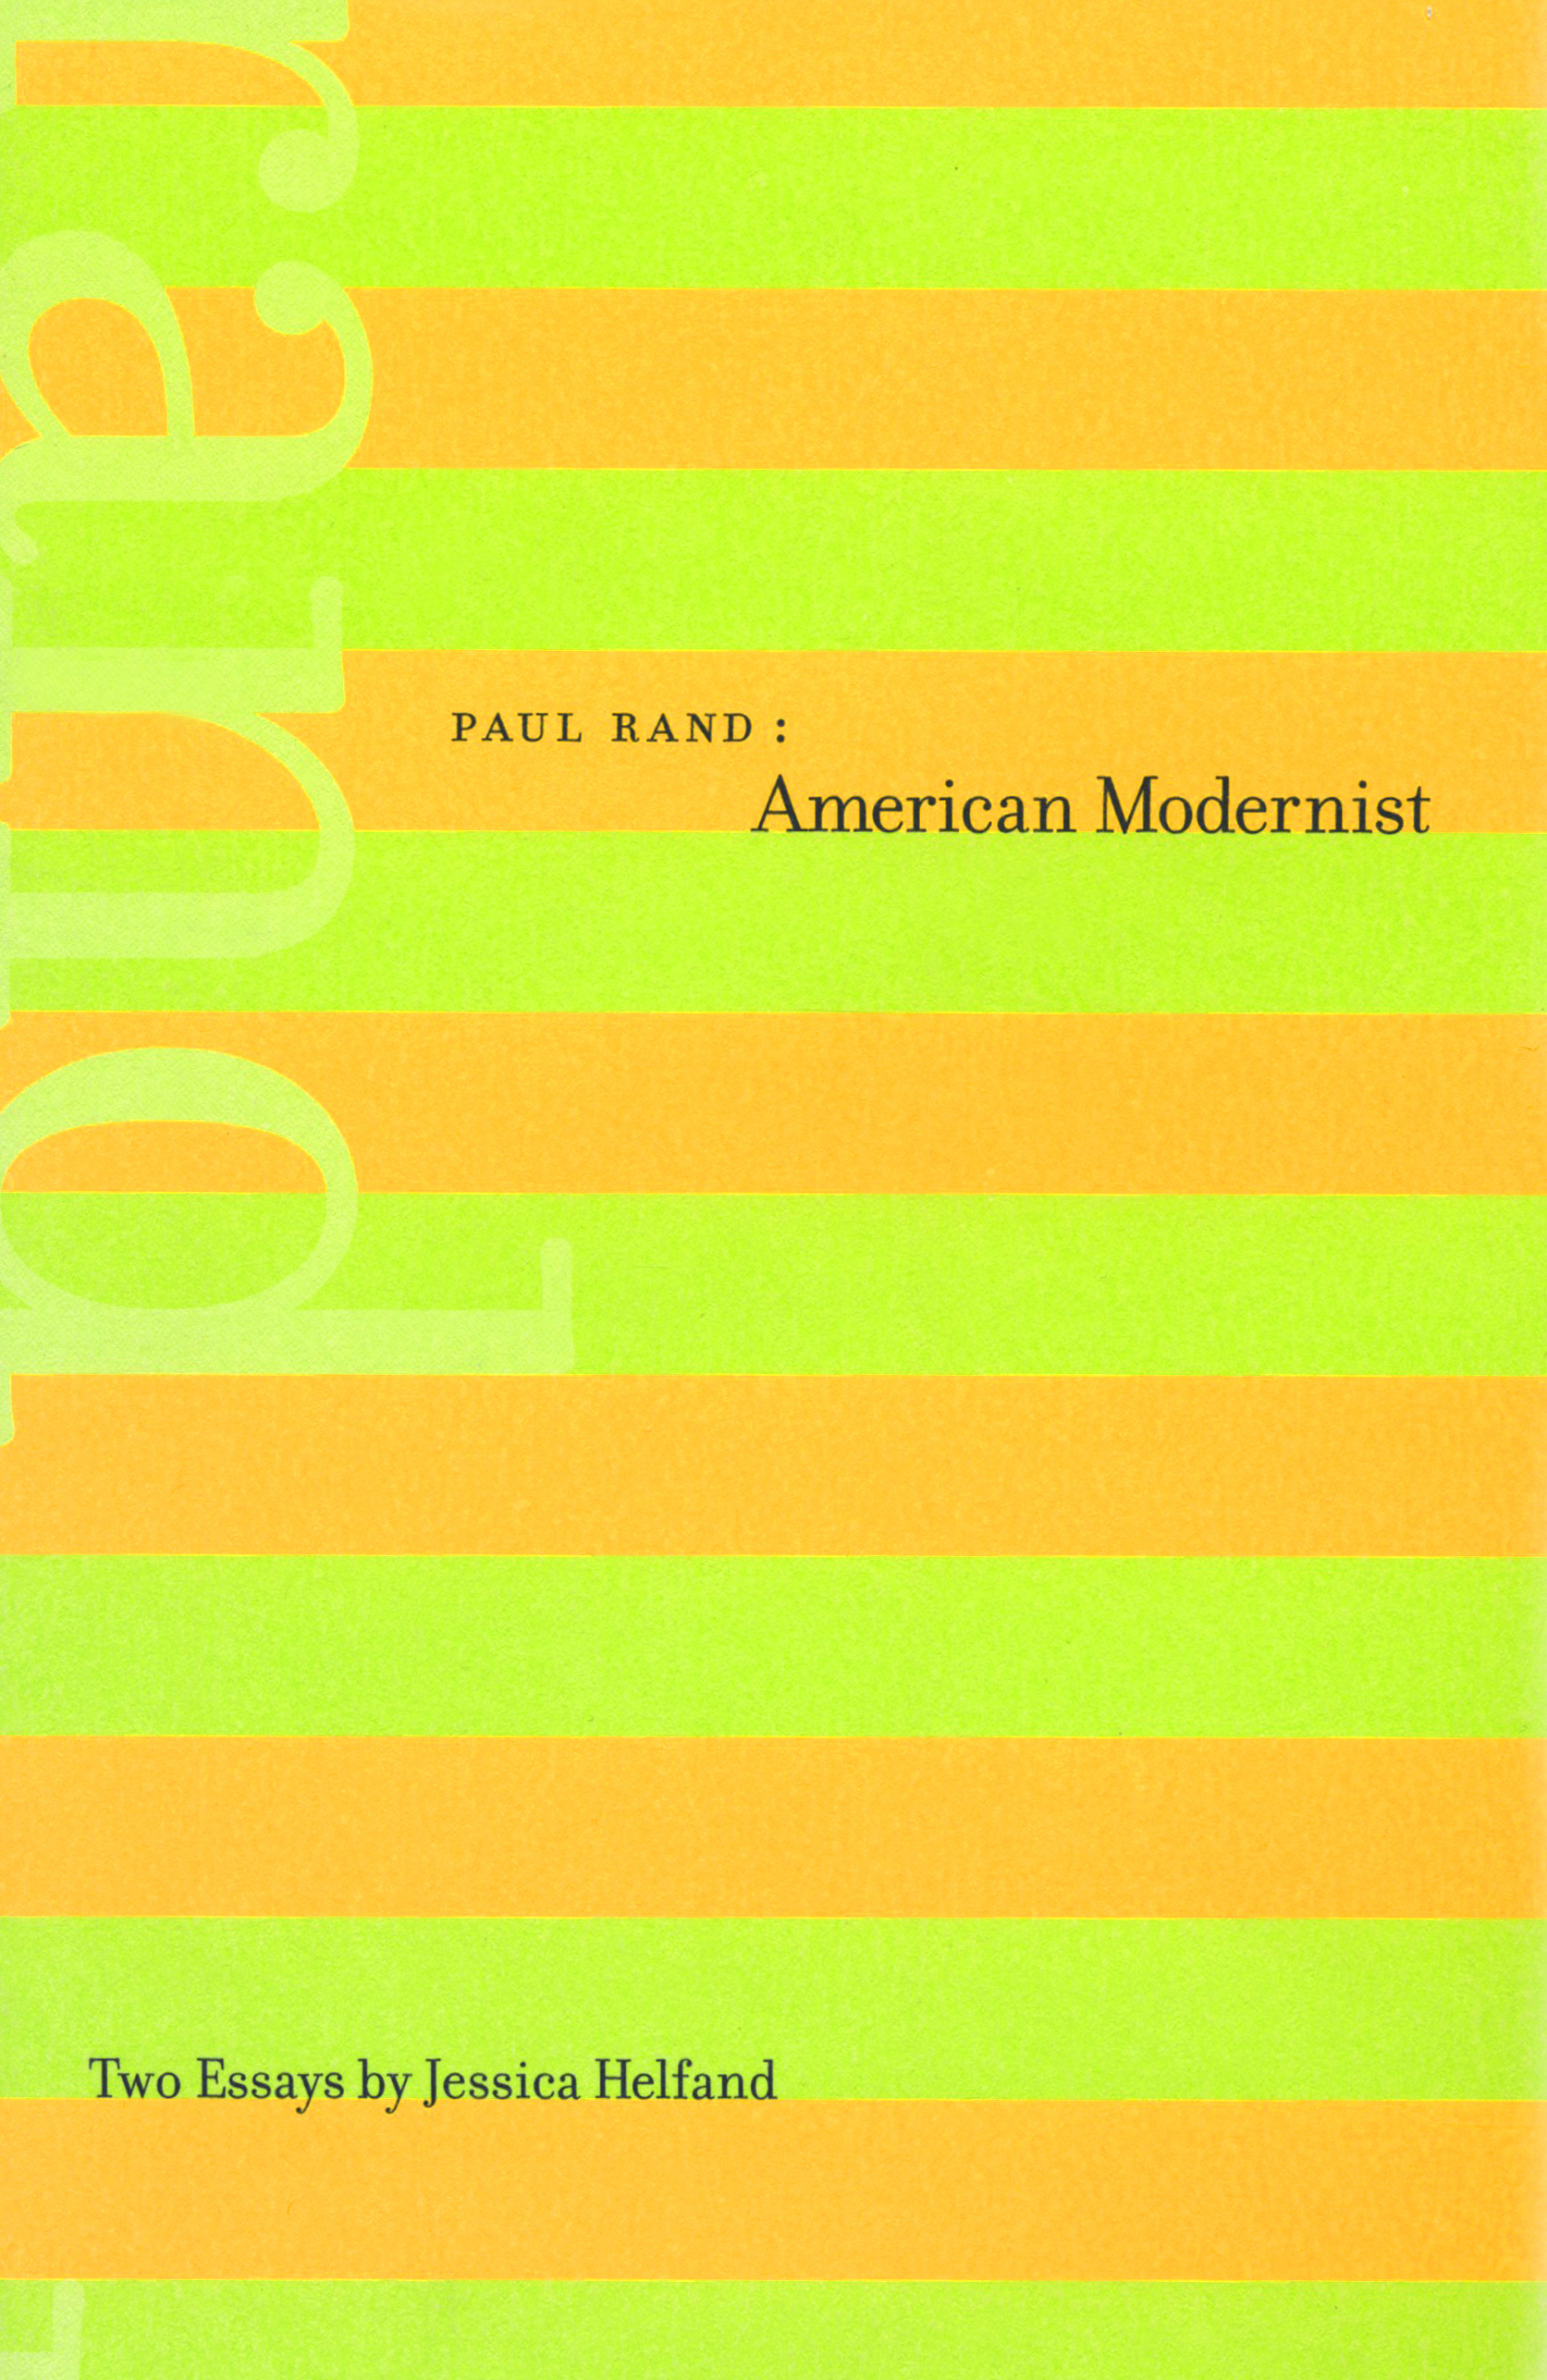 Paul Rand: American Modernist